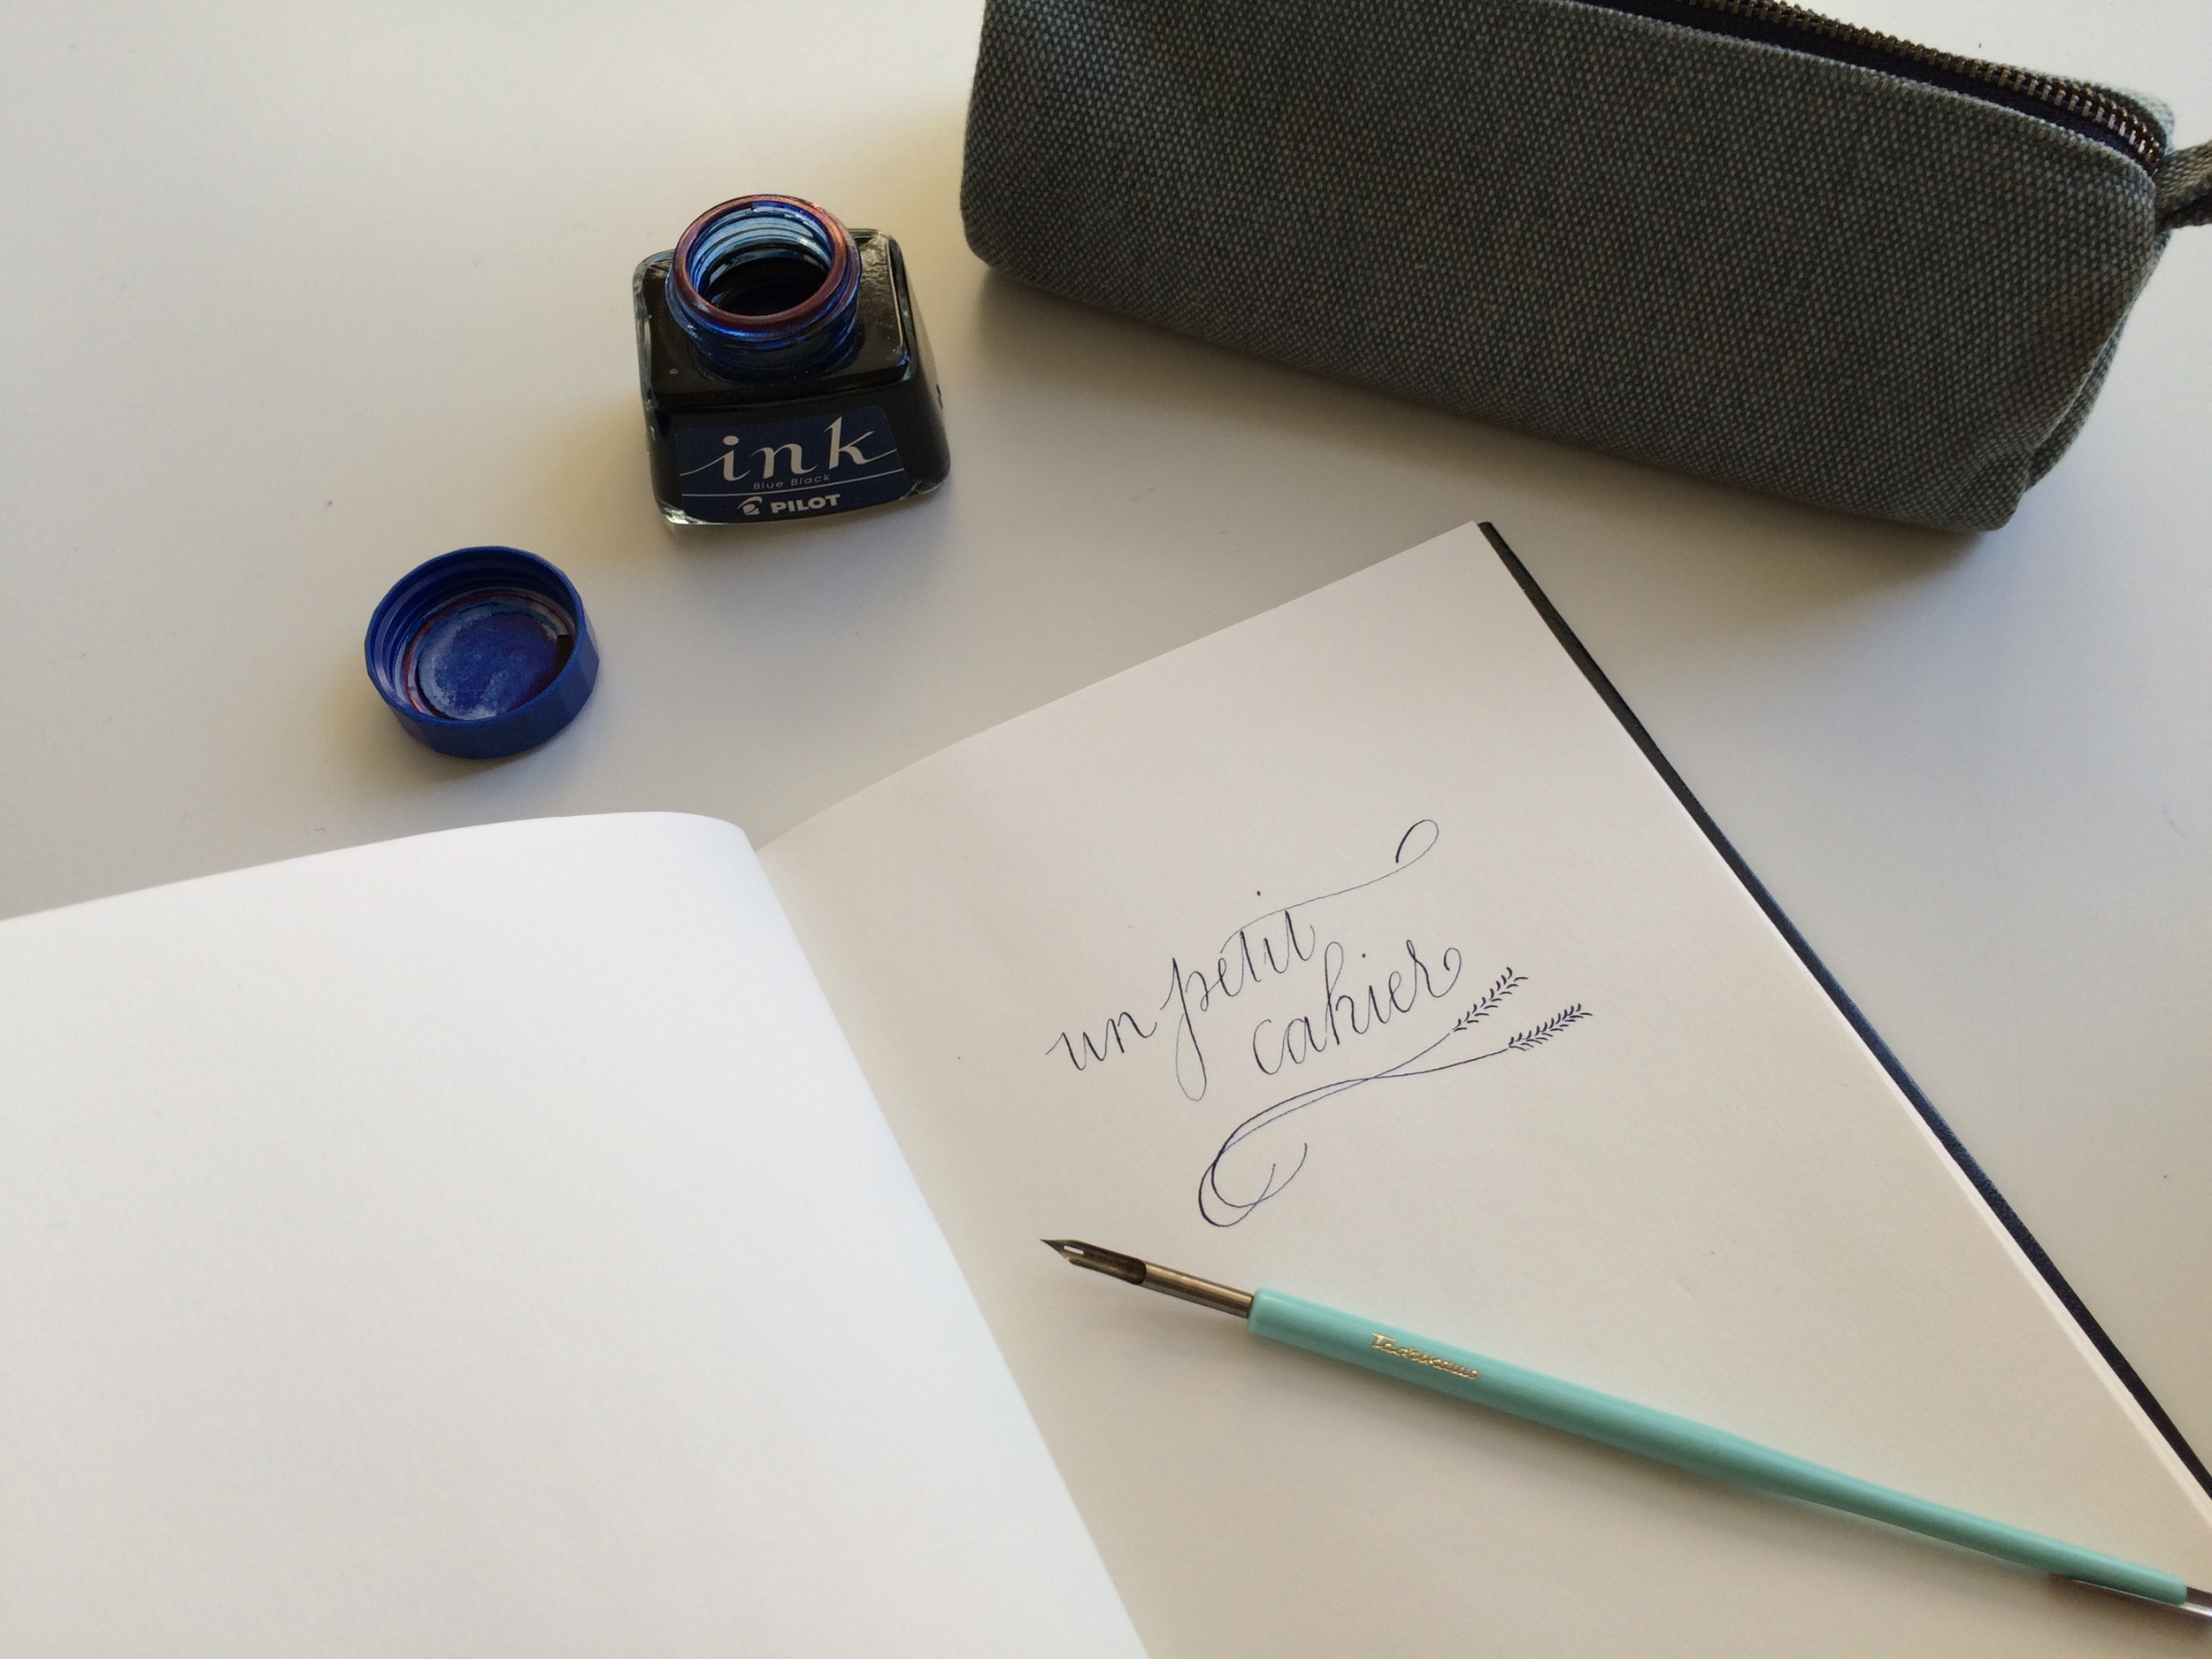 Trying out the blue-black ink with the new mapping quill nib.